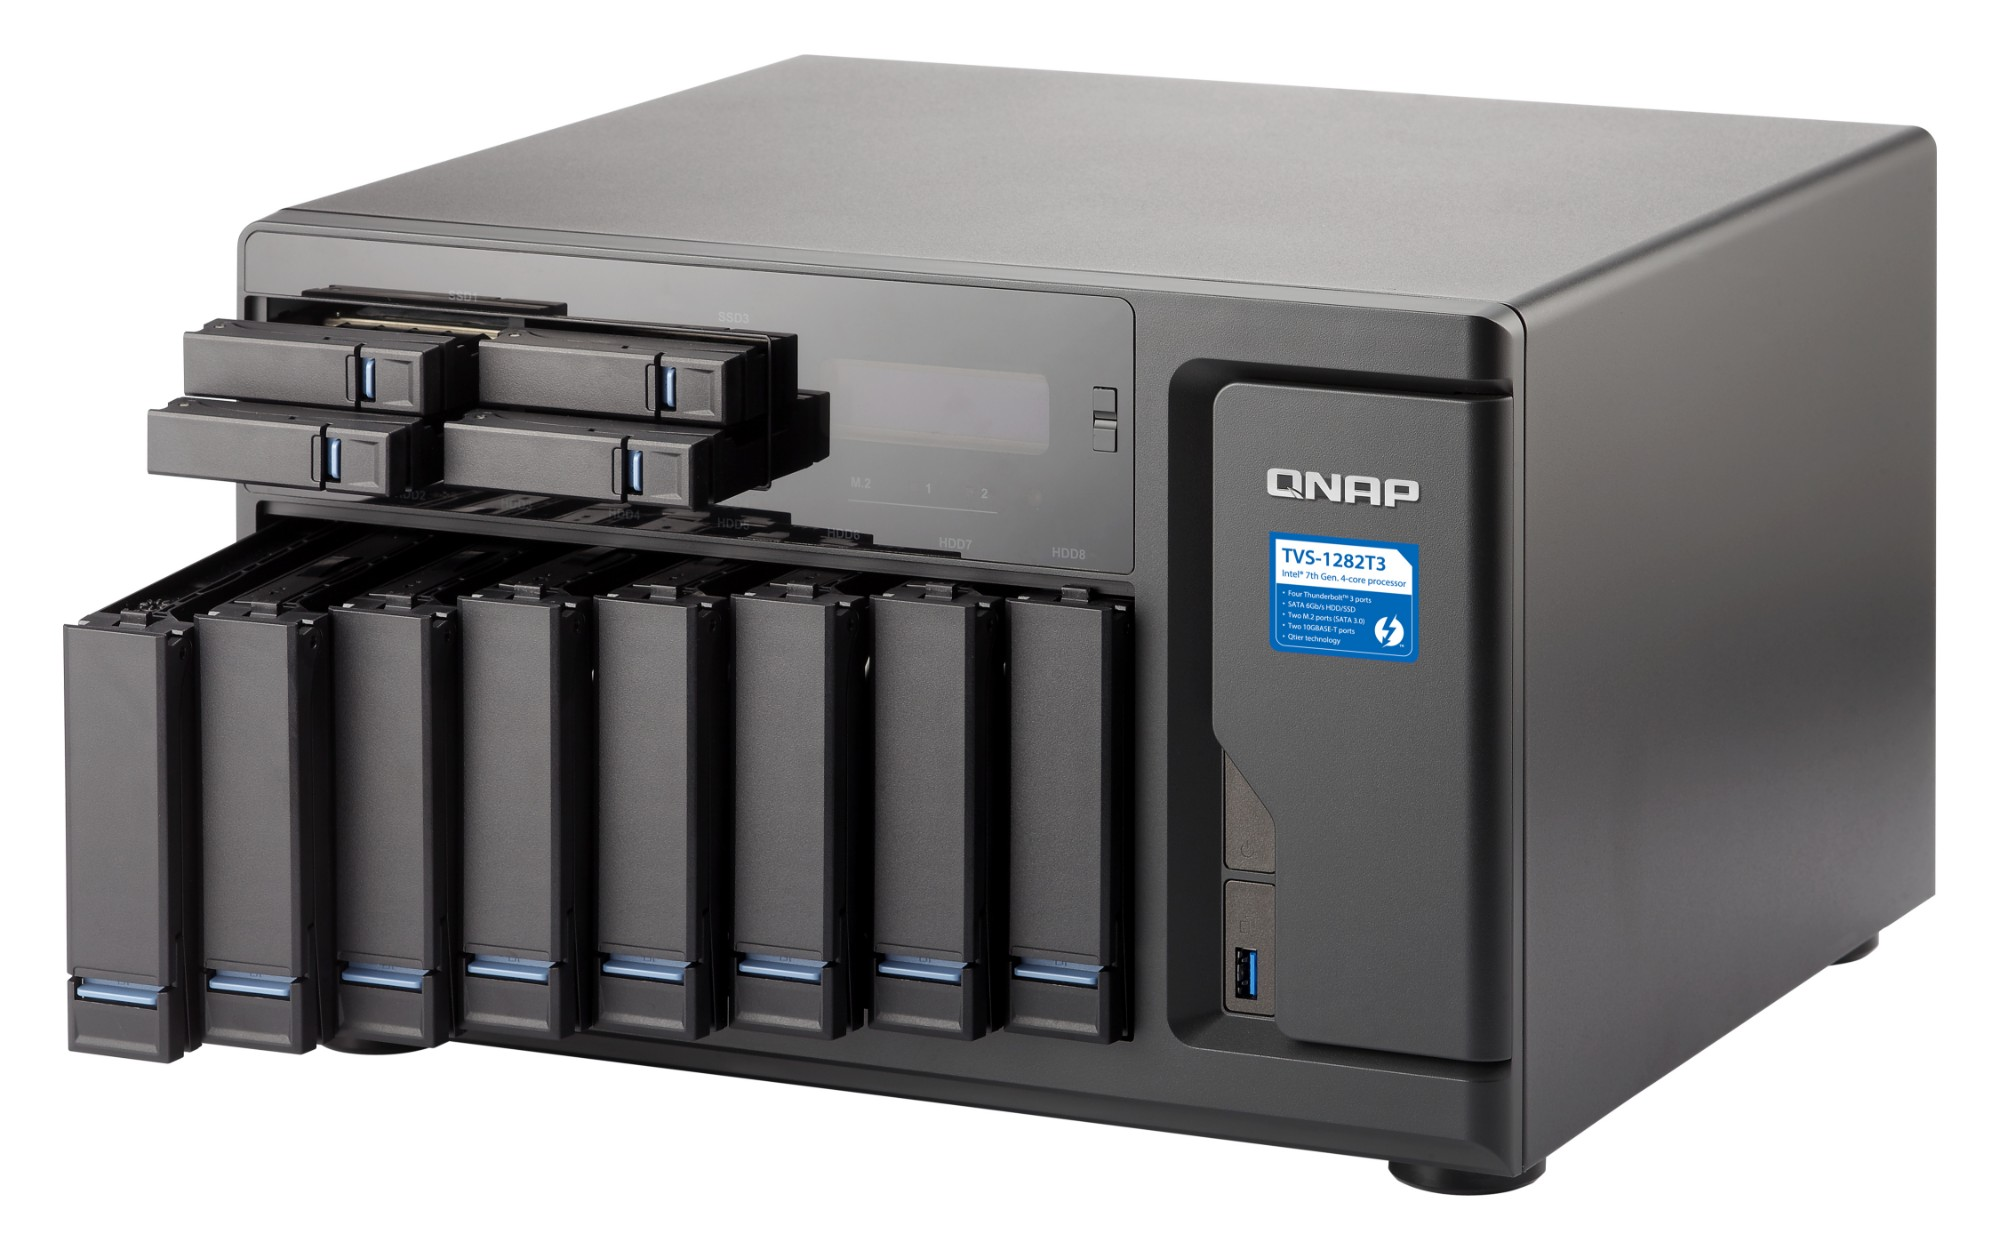 QNAP TVS-1282T3 Ethernet LAN Tower Black NAS